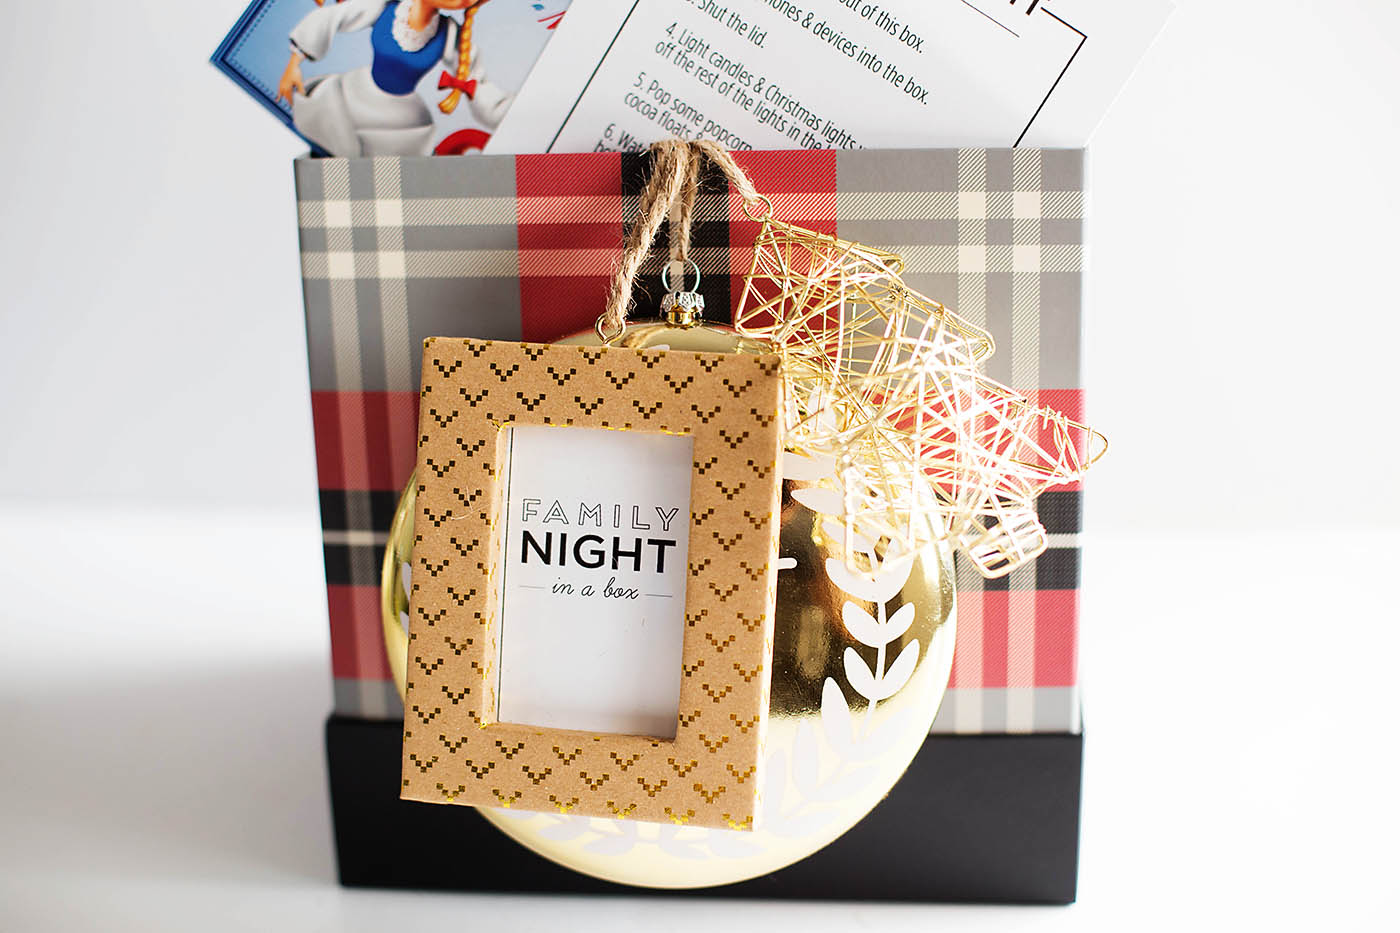 Fun family night gift box idea with free printables!